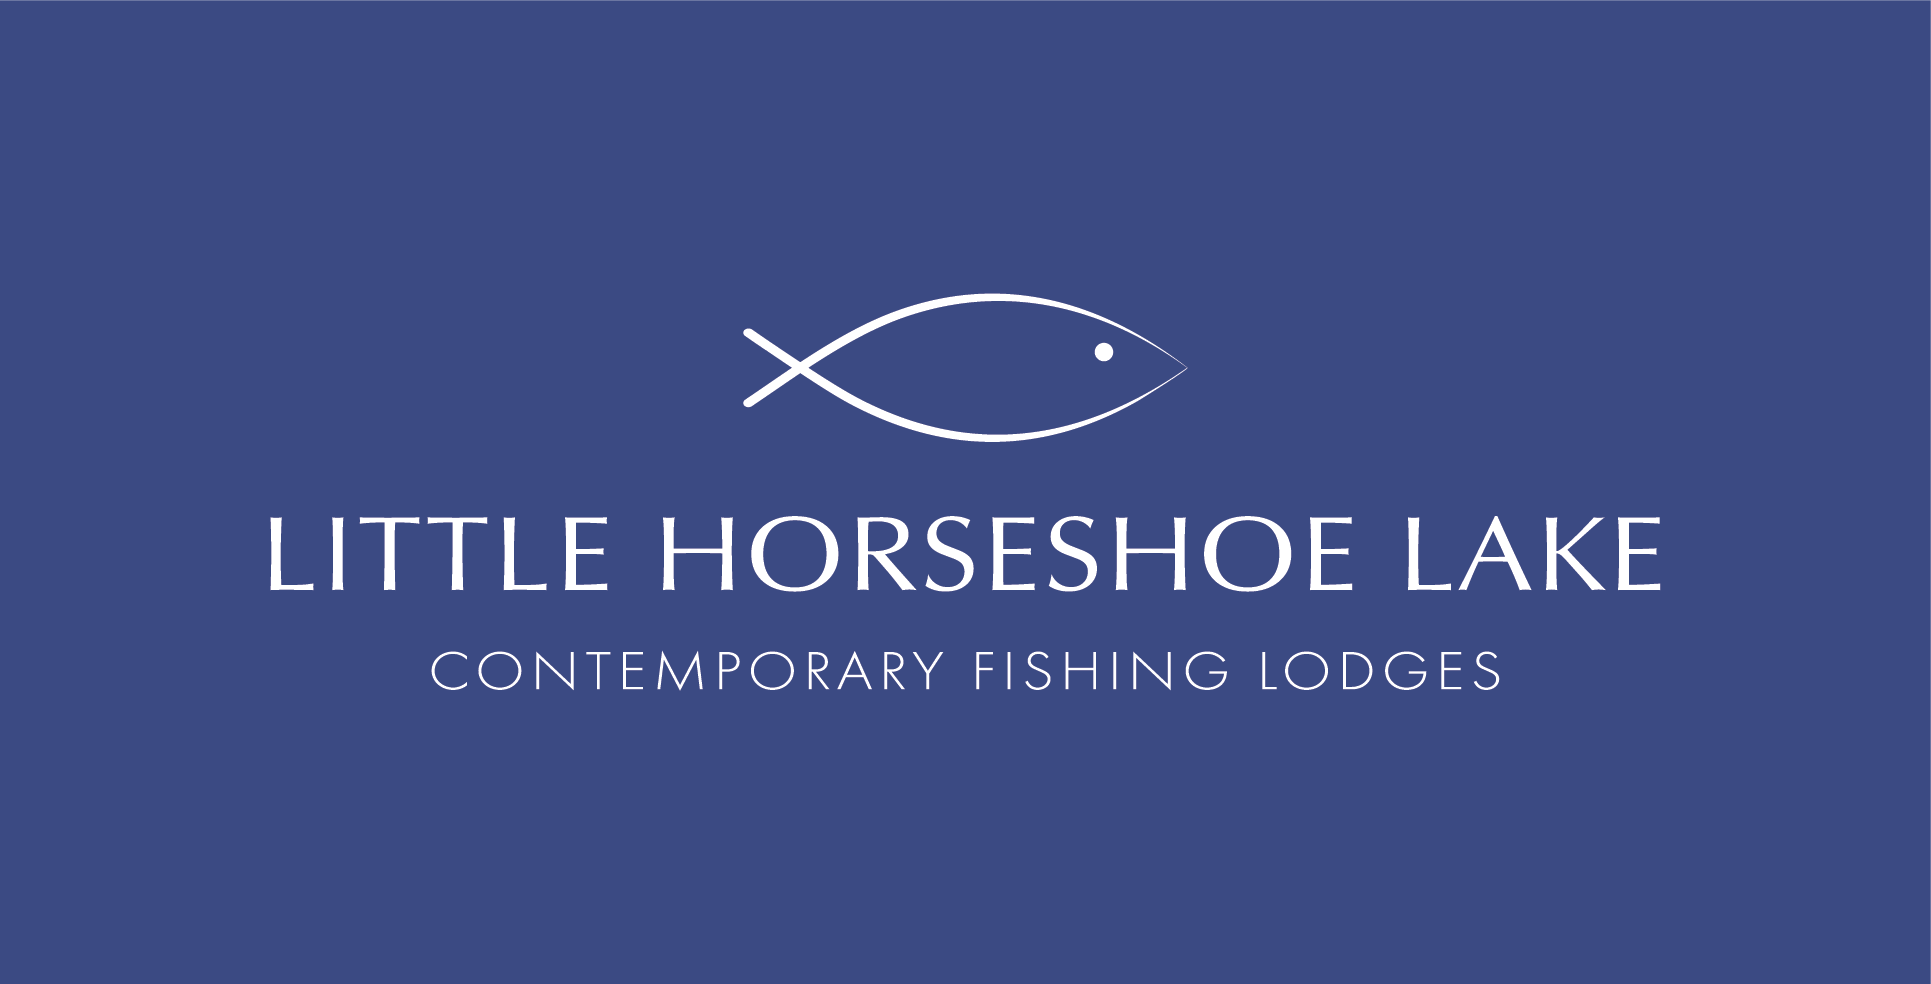 Little Horseshoe Lake Fishing Lodges